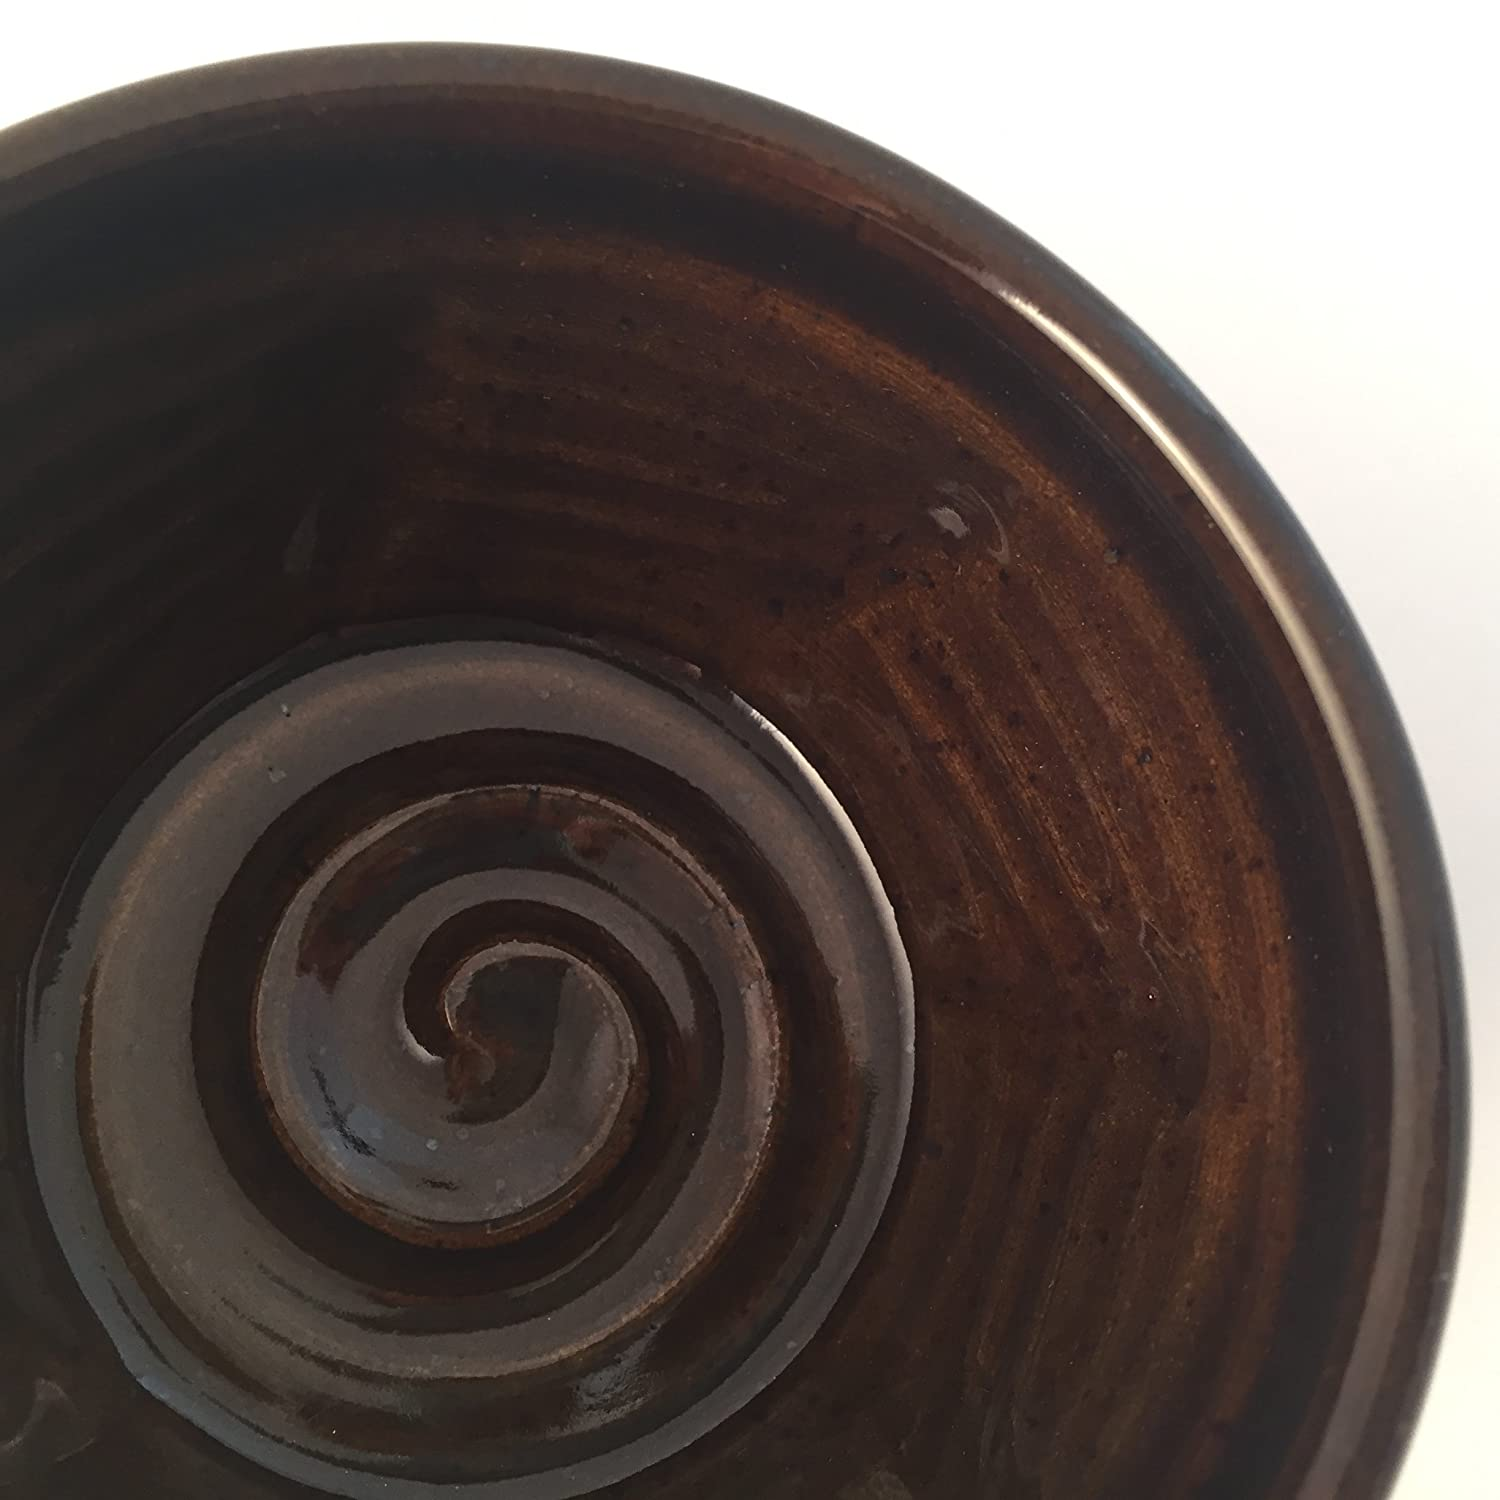 Shaving Bowl in Brown for Men - Handmade Pottery